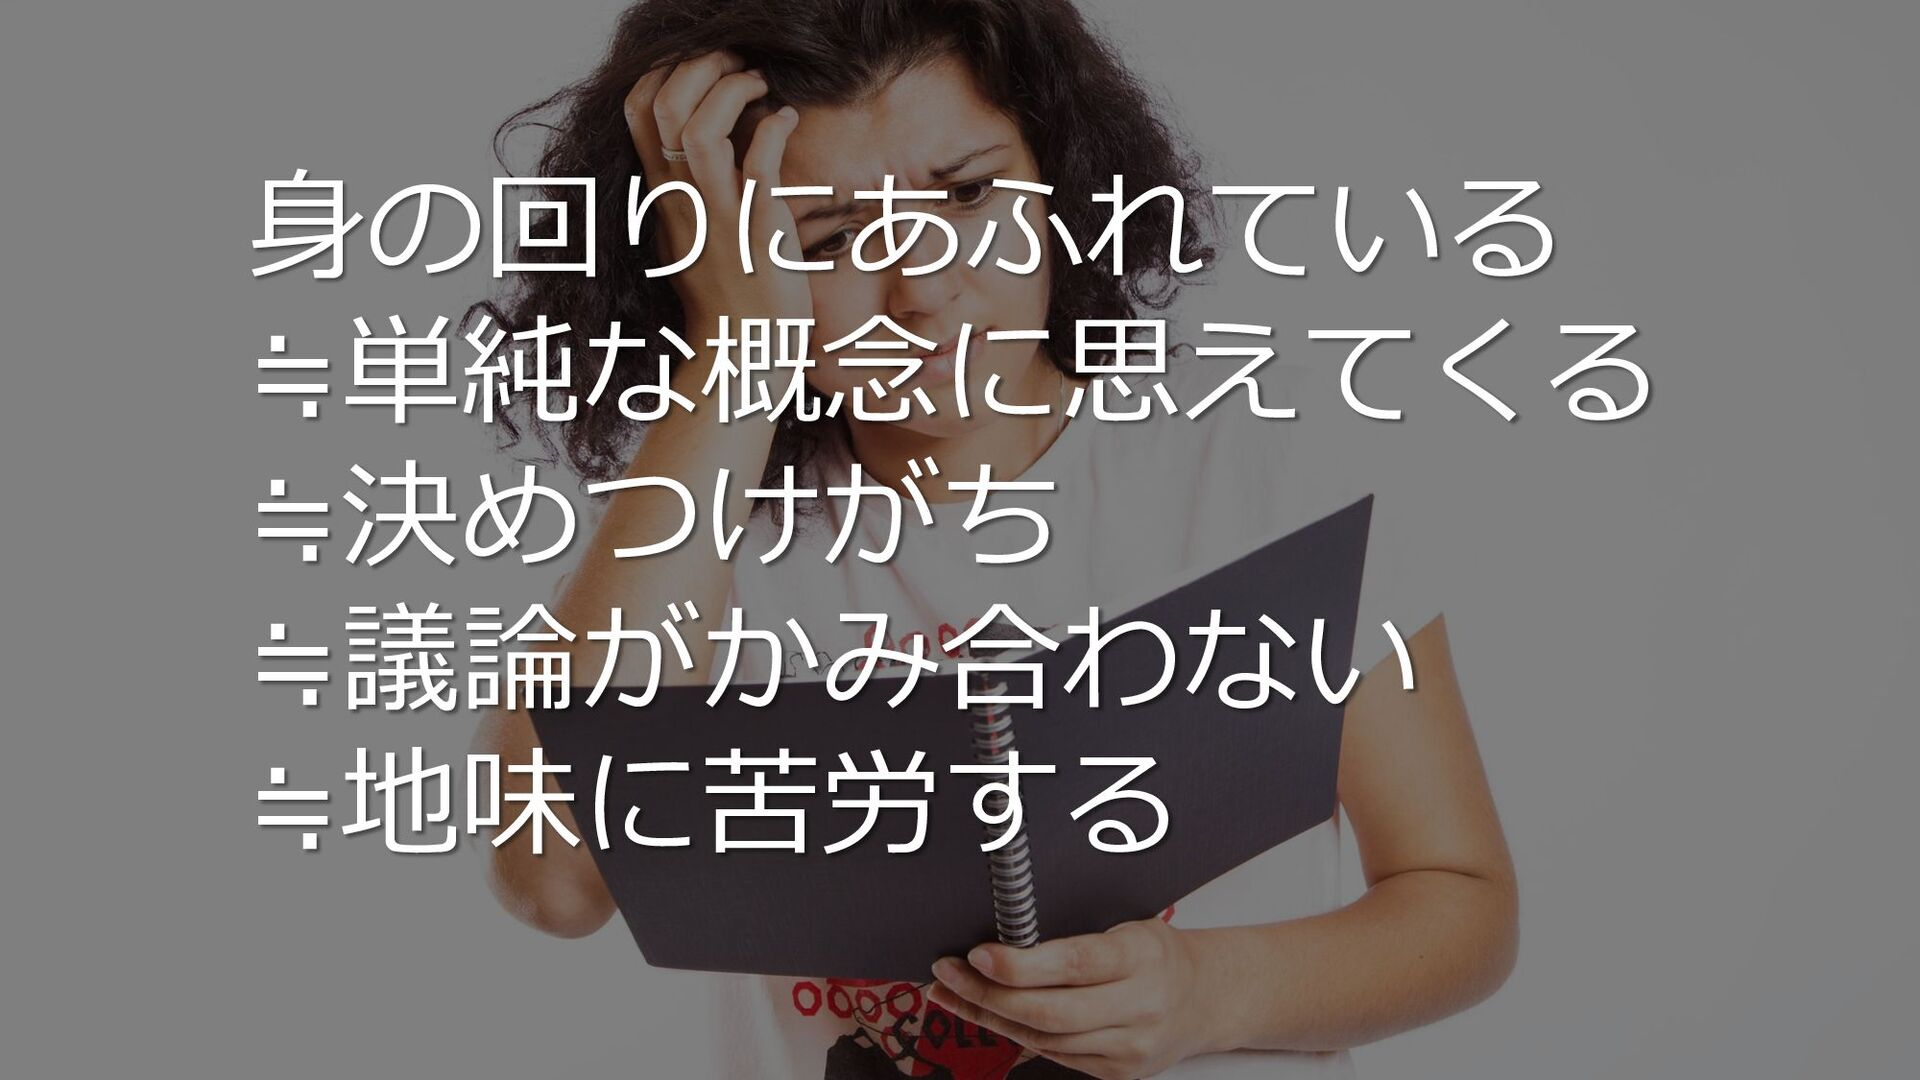 相互認証 Cross Certification Mutual Authentication